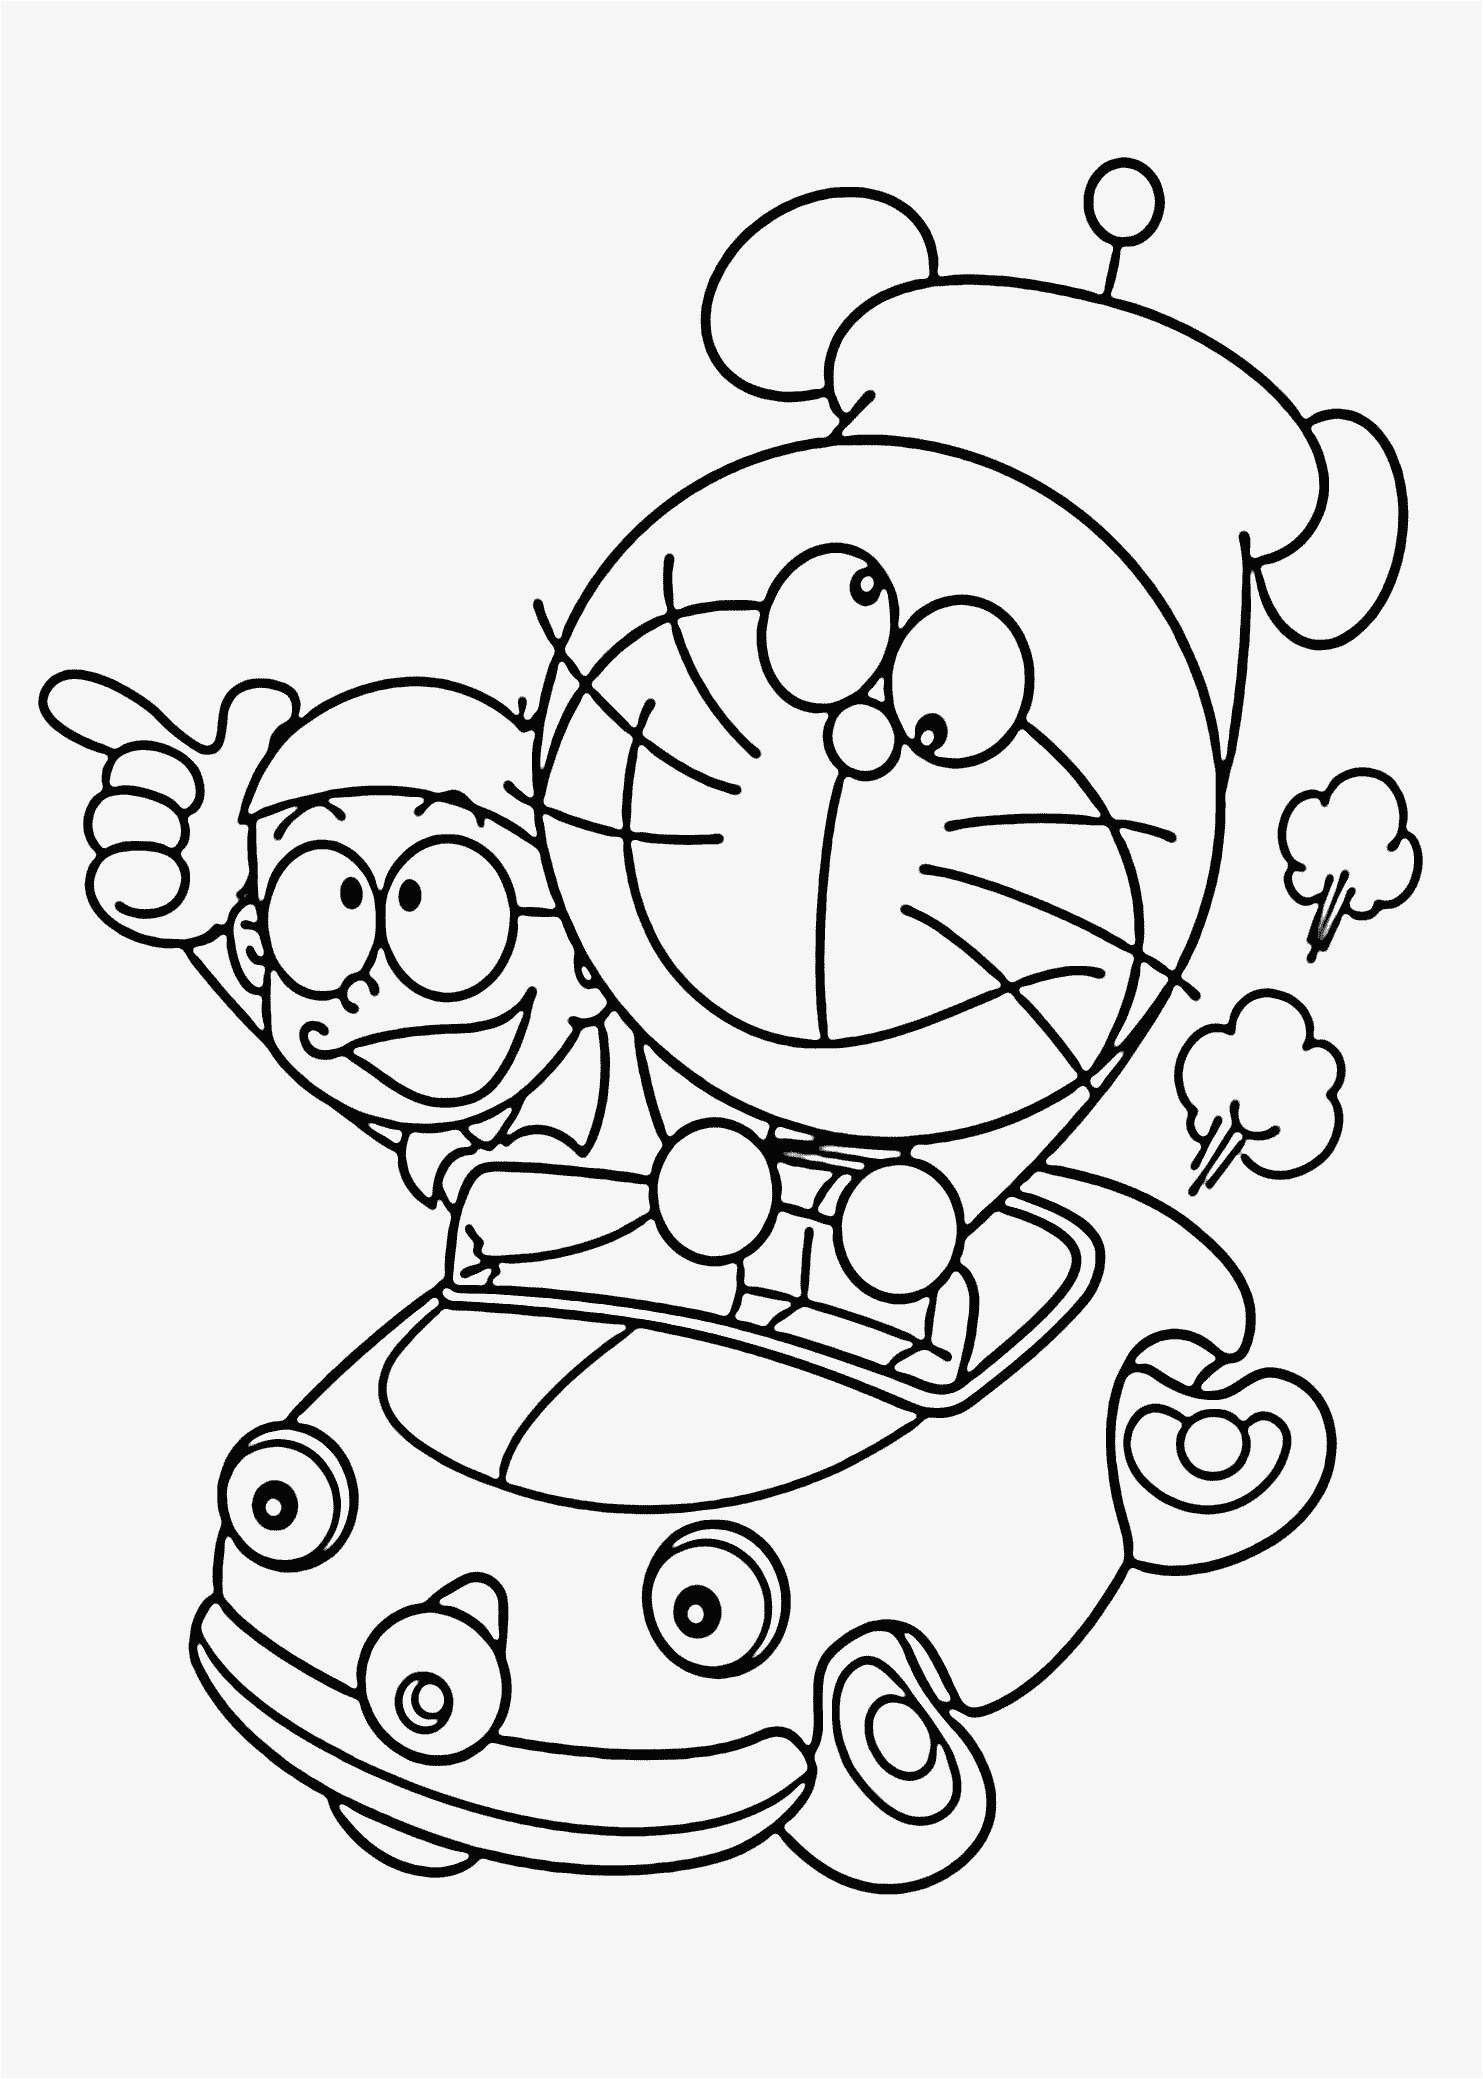 pig to colour 70 animal colouring pages free download print free to pig colour